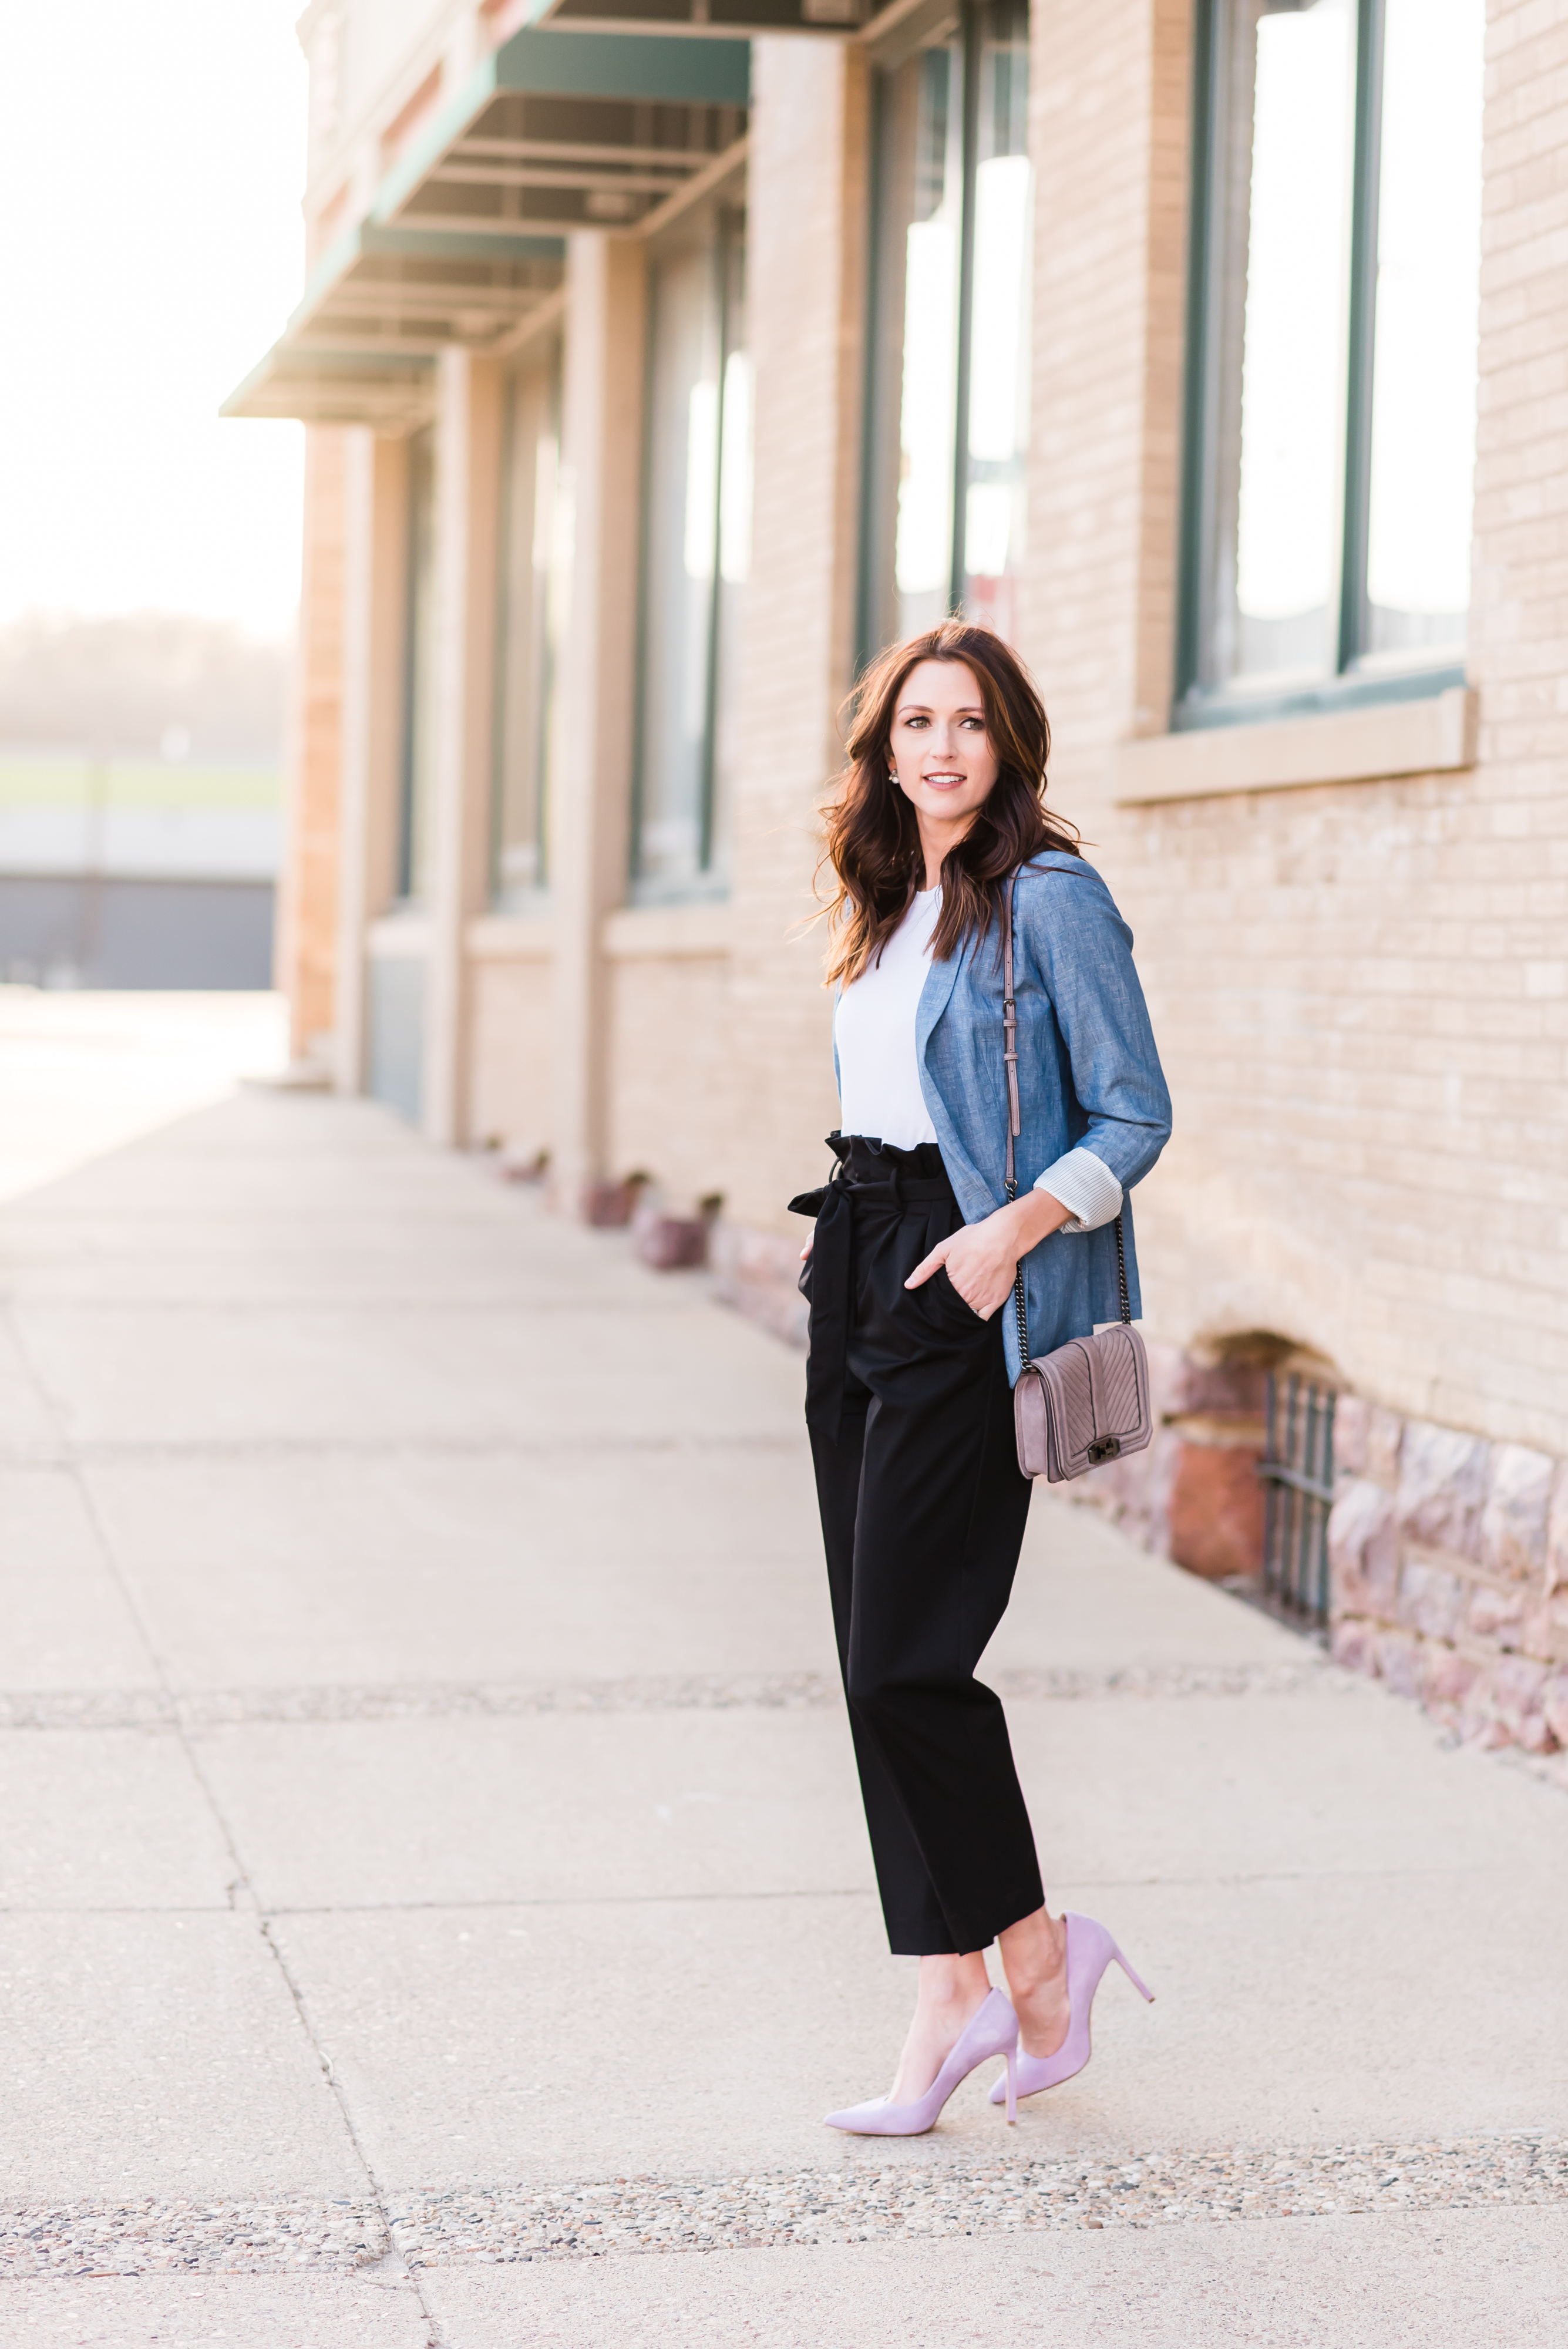 e2f99a63c26 Summer Work Outfit - Midwest In Style